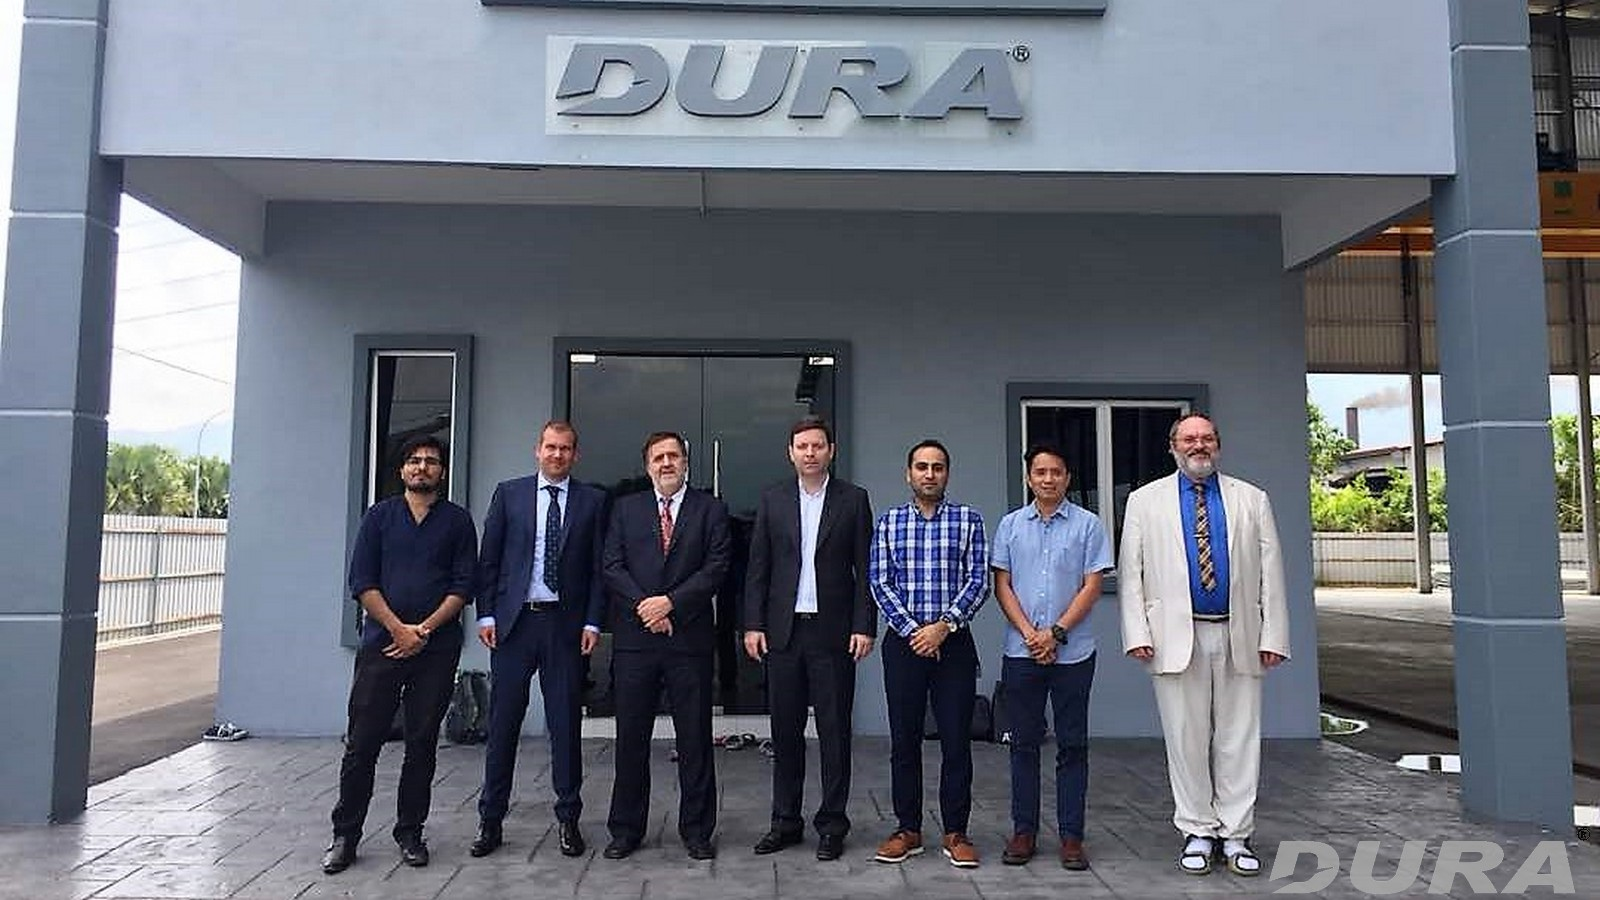 A group photo in front of Dura Technology office (from left: Zain, Martin Berka, Prof. Drahmir Novak, Associate Prof. David Lehky, Dr. Milad, Lee Jun Lit and Dr. Radomir Pukl ) .